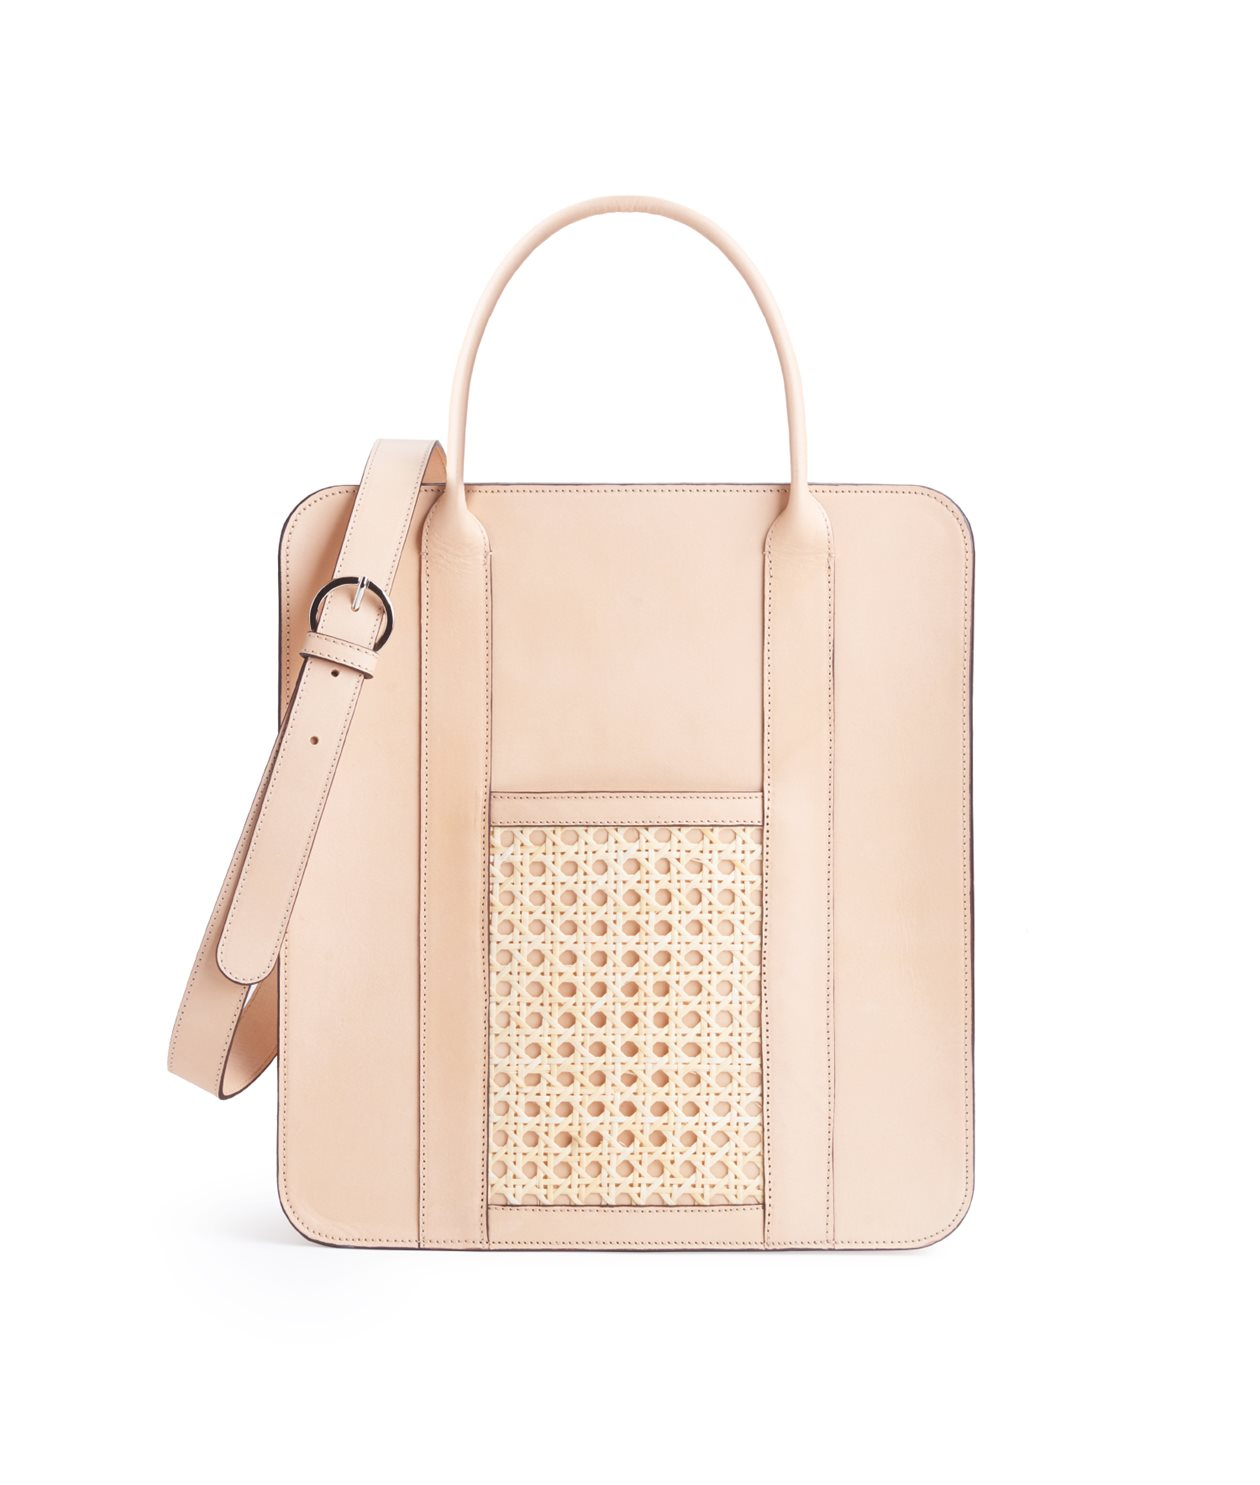 Palmgrens - EO Tote Bag Palm31 Ofärgad - Genuine handcrafted leather ... 79e8ee241695c